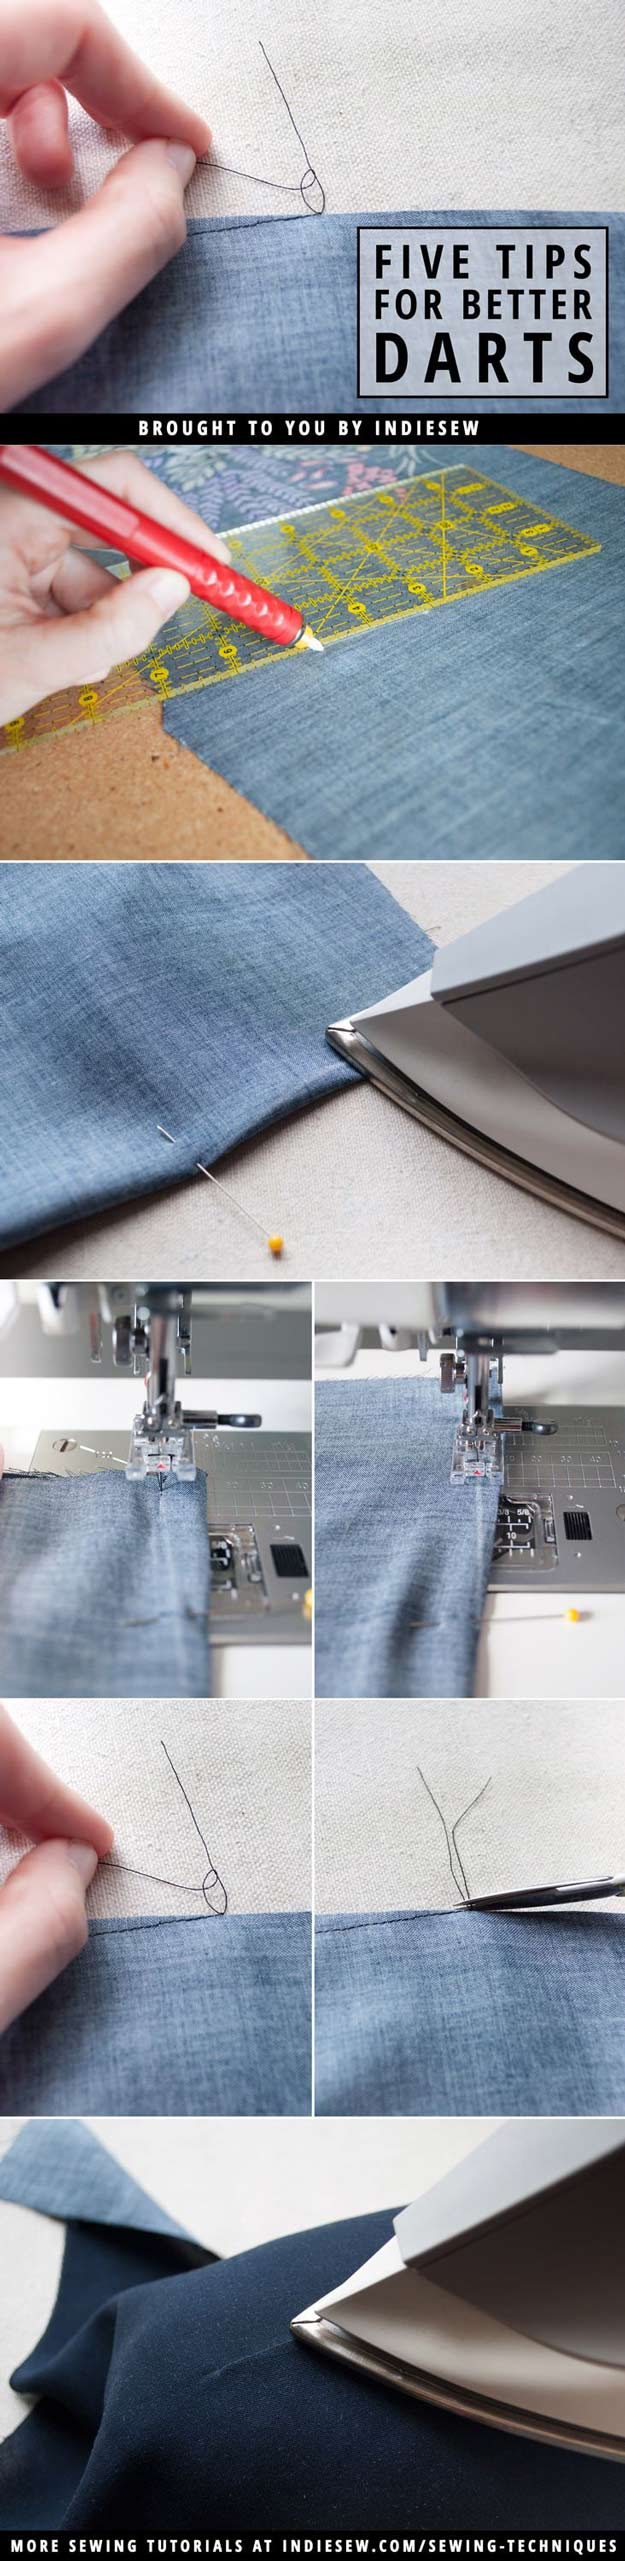 Sewing Hacks | Best Tips and Tricks for Sewing Patterns, Projects, Machines, Hand Sewn Items. Clever Ideas for Beginners and Even Experts | 5 Tips For Better Darts